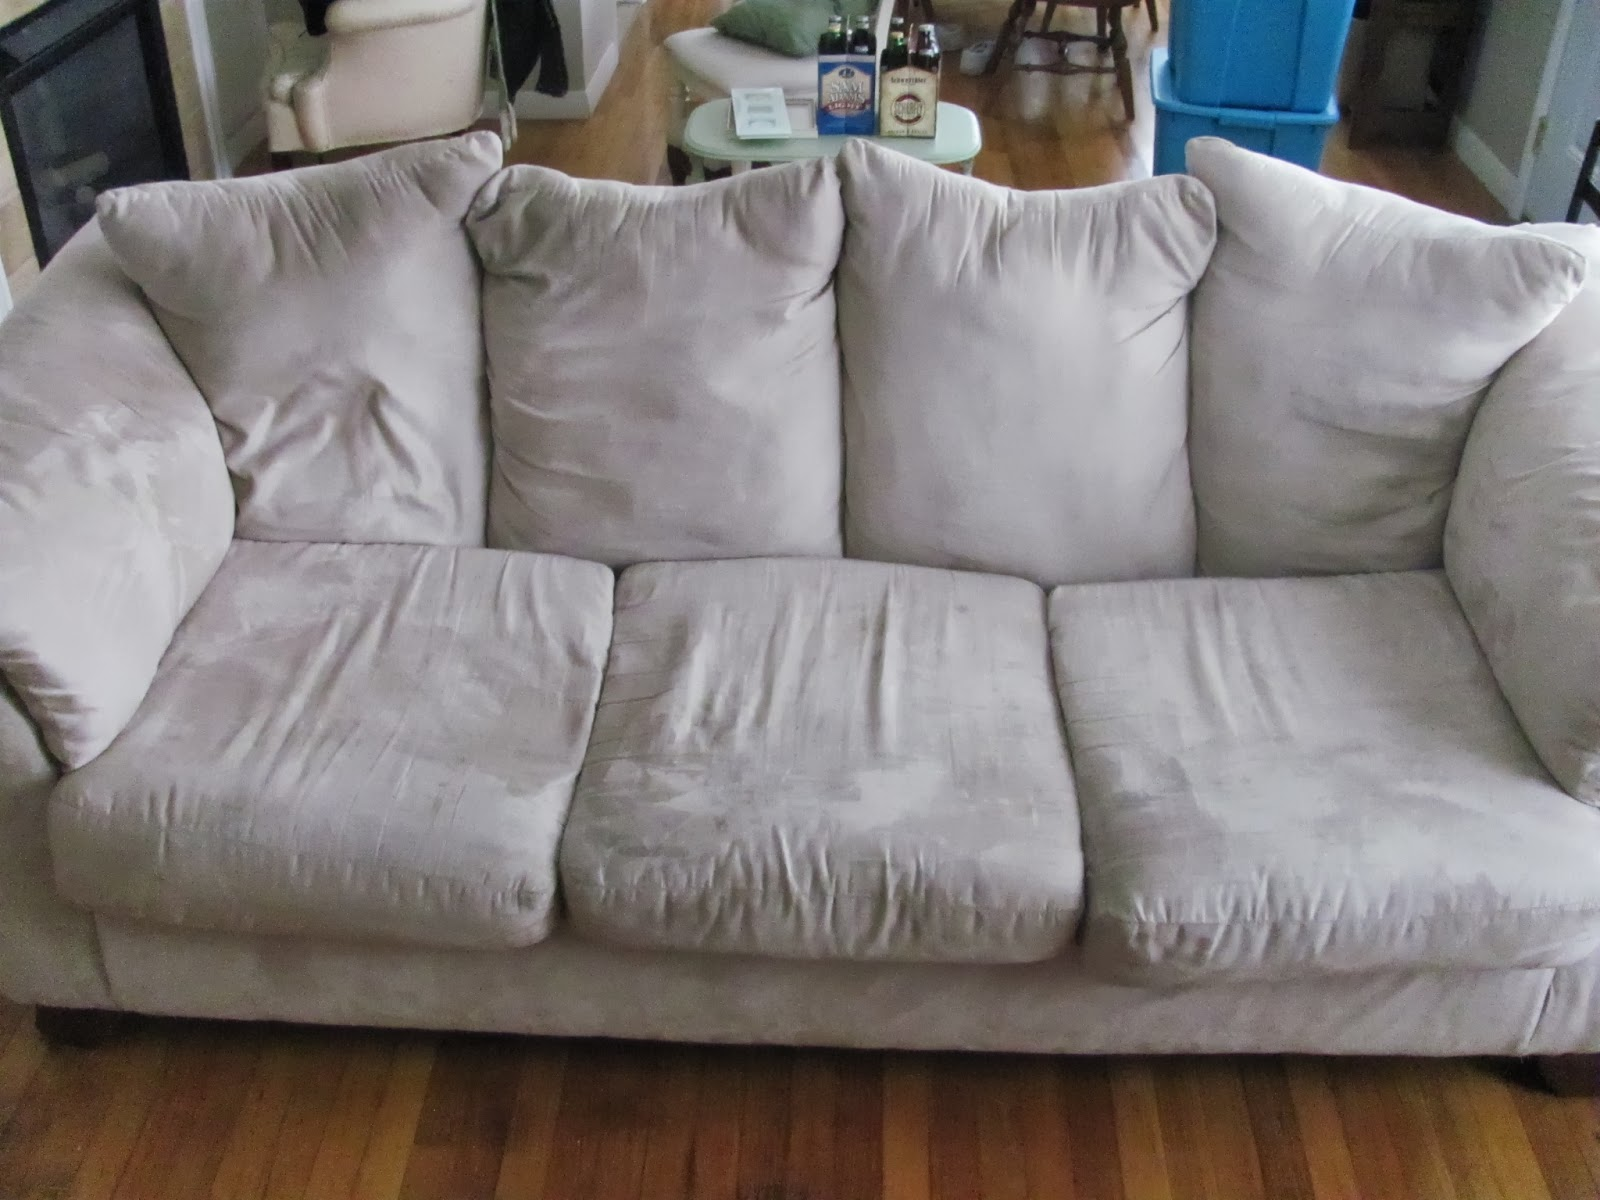 A white squishy couch on display before being sold on Craigslist